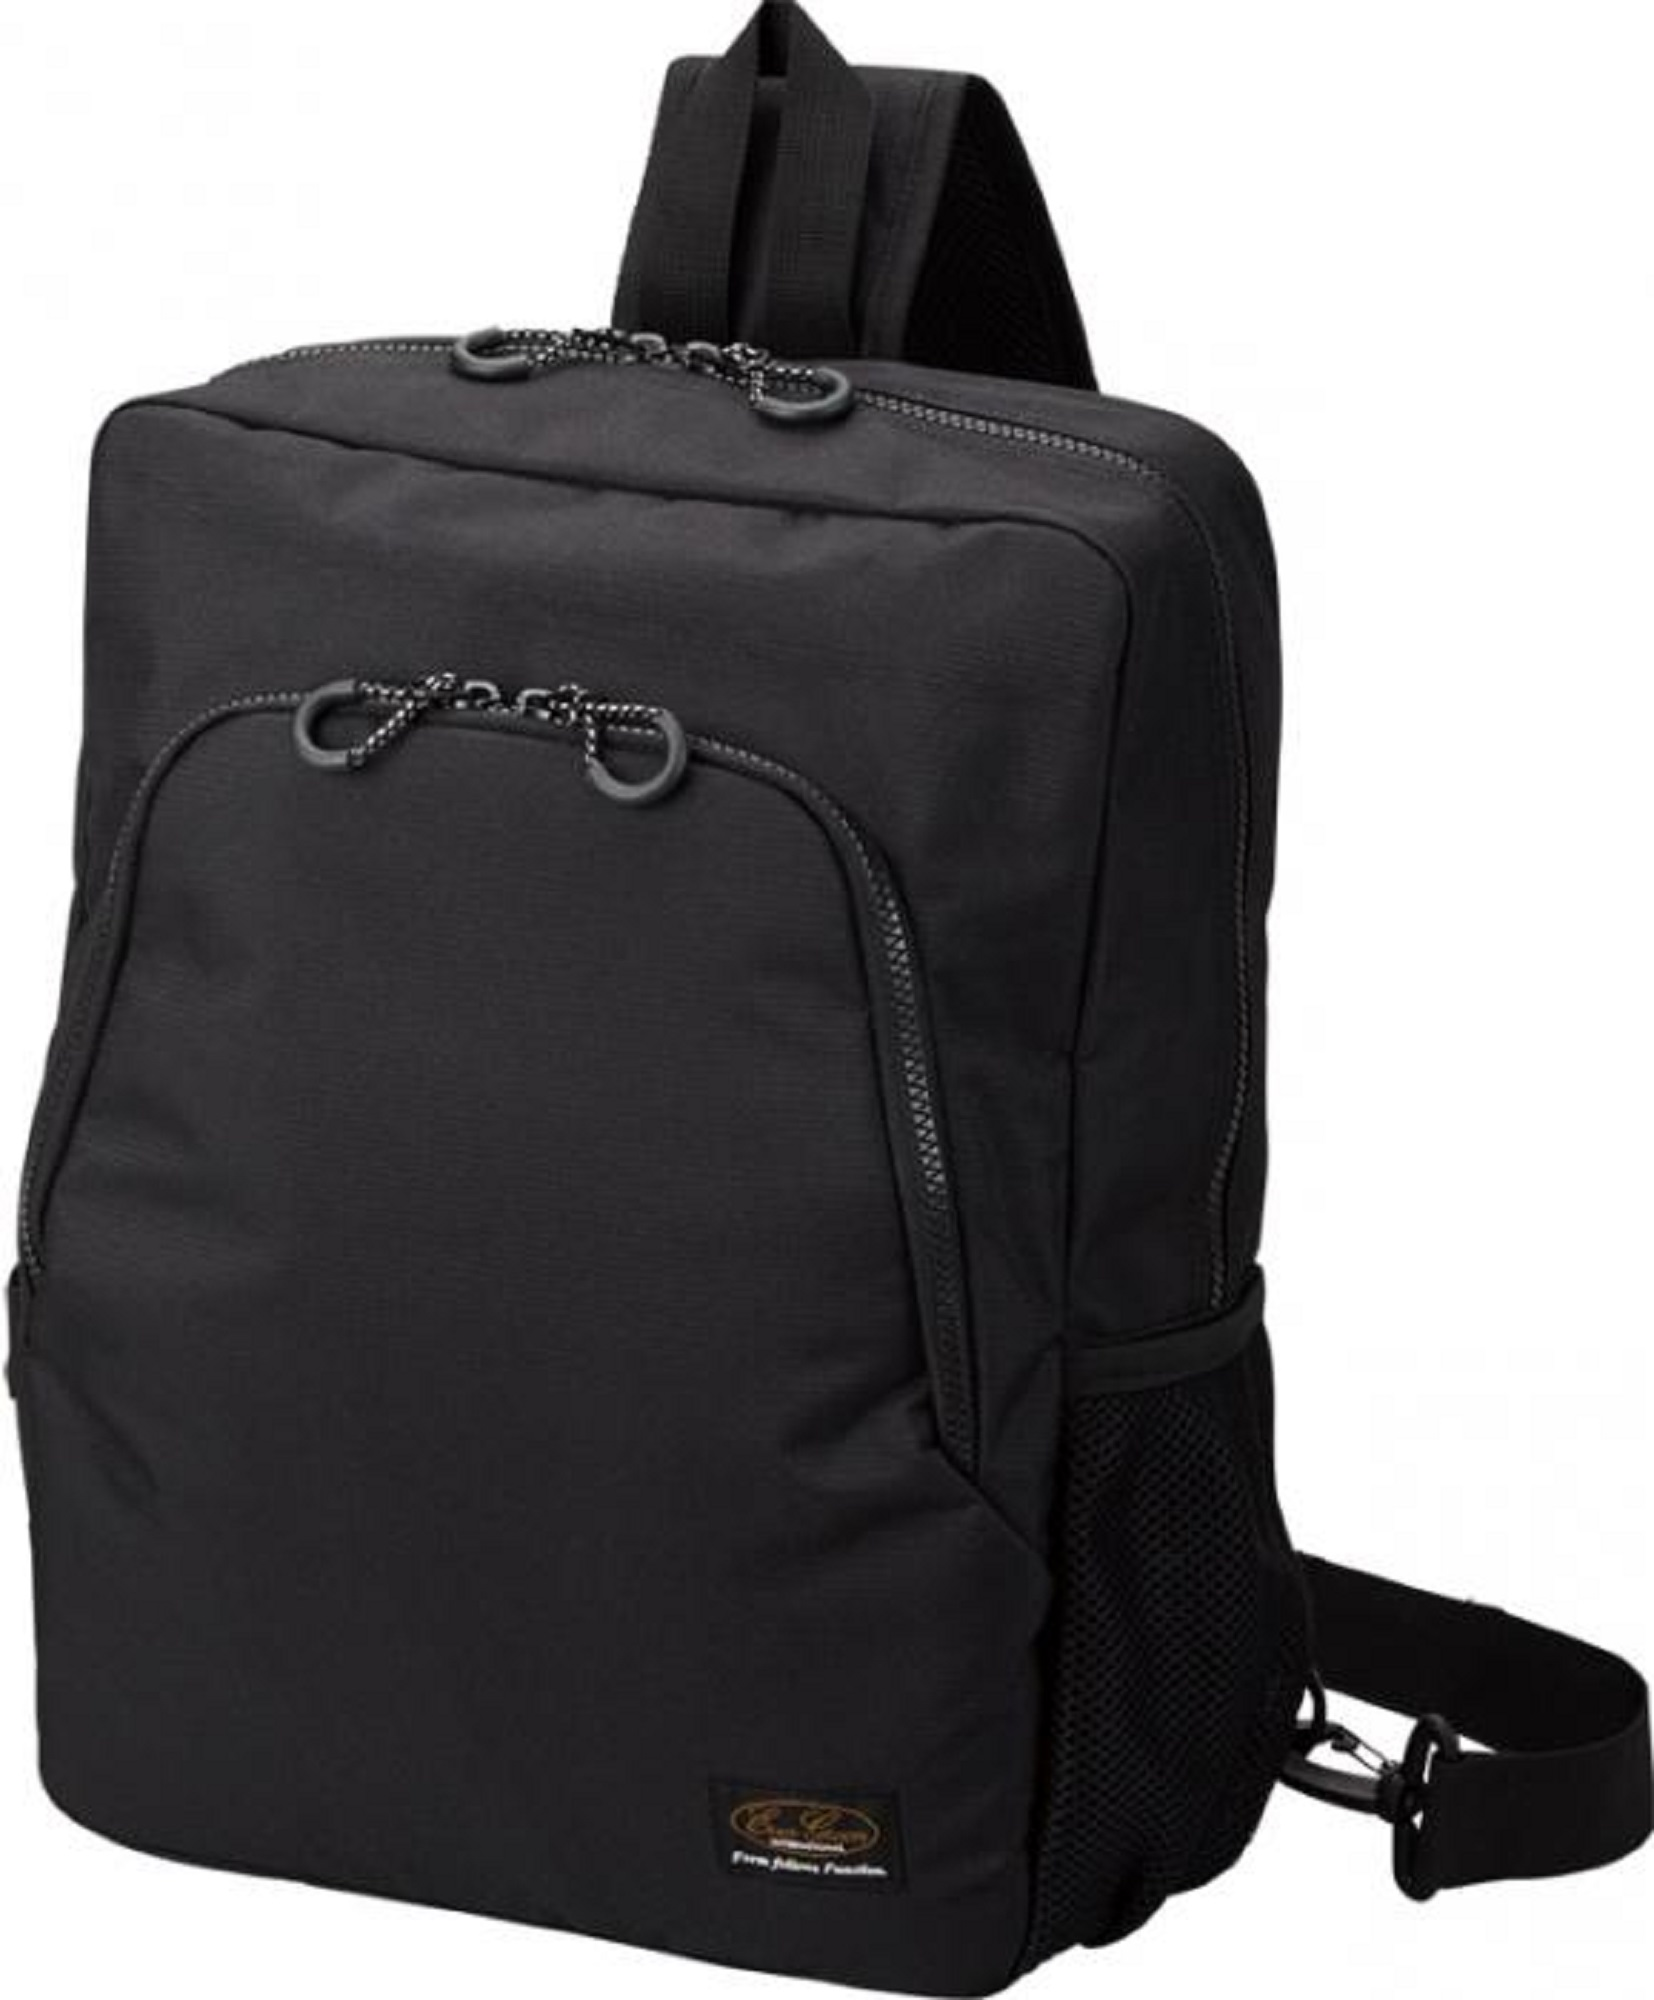 Sale Evergreen Tackle Bag One Shoulder Big Fishing Bag Black (6797)